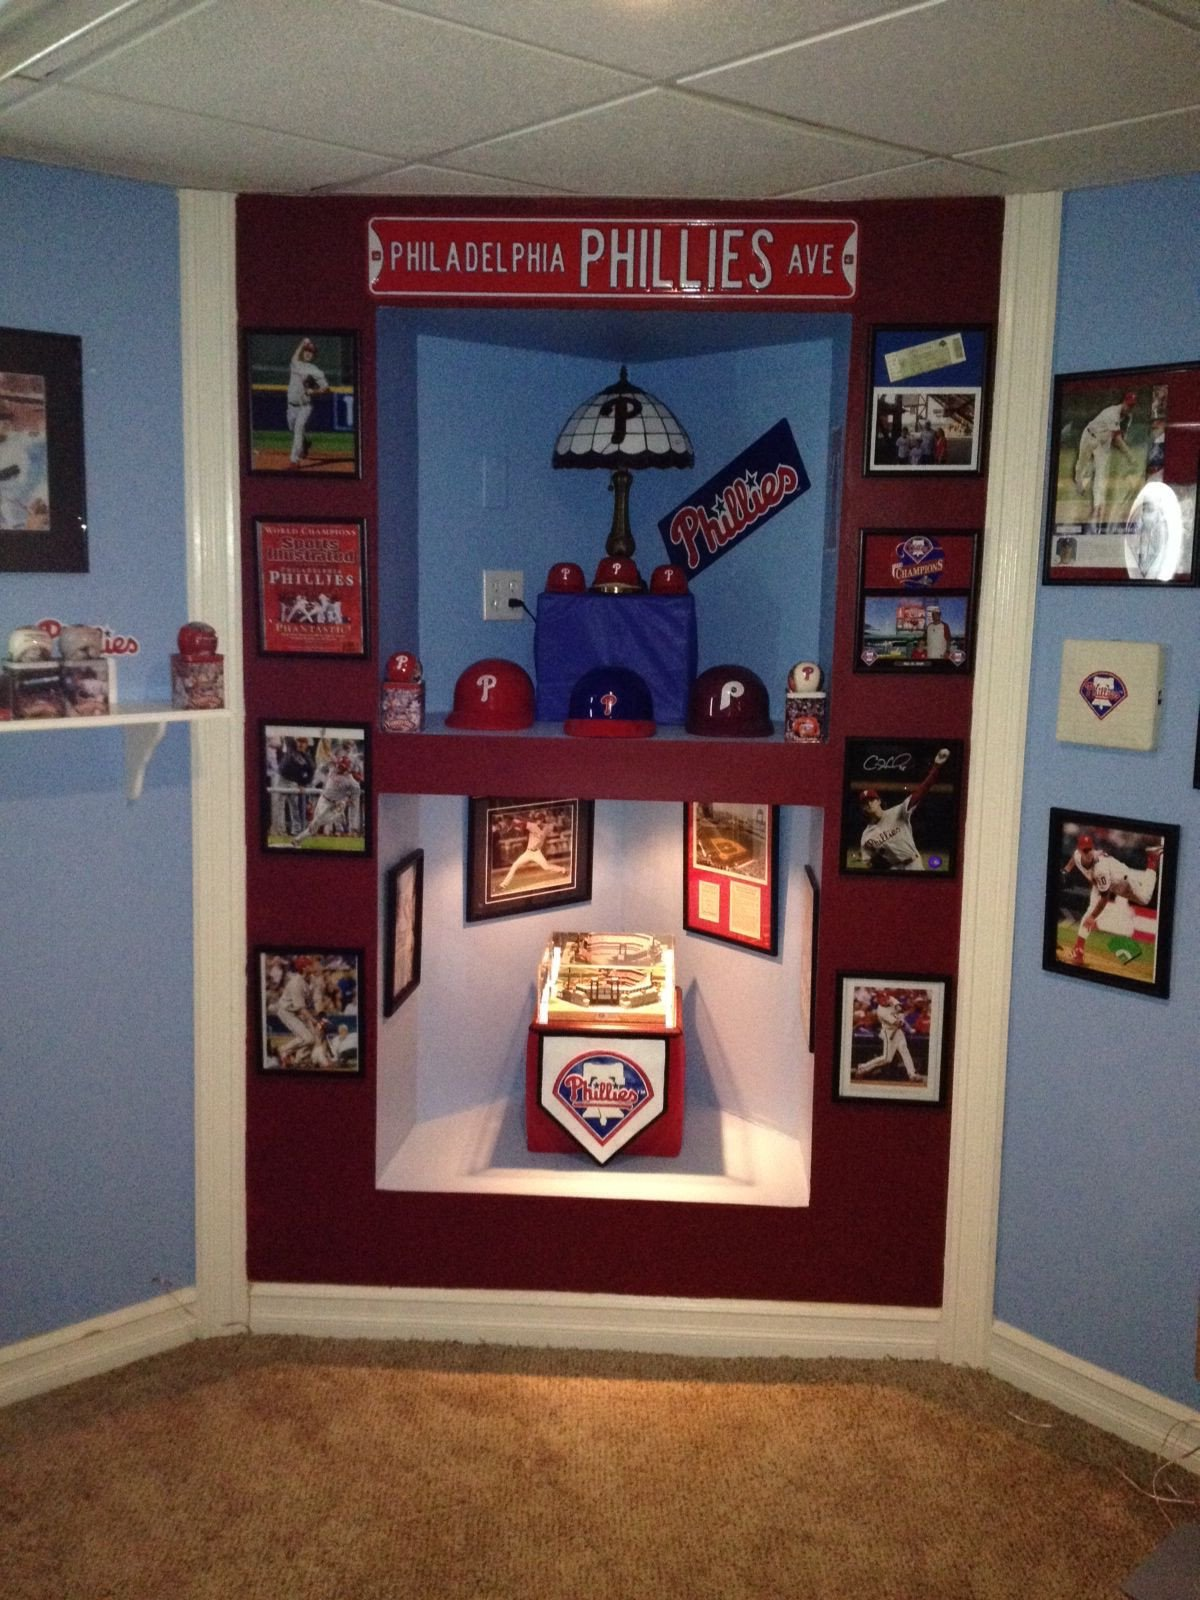 Man Cave Bedroom Ideas Lovely Phillies Man Cave Ideas Corner Built In